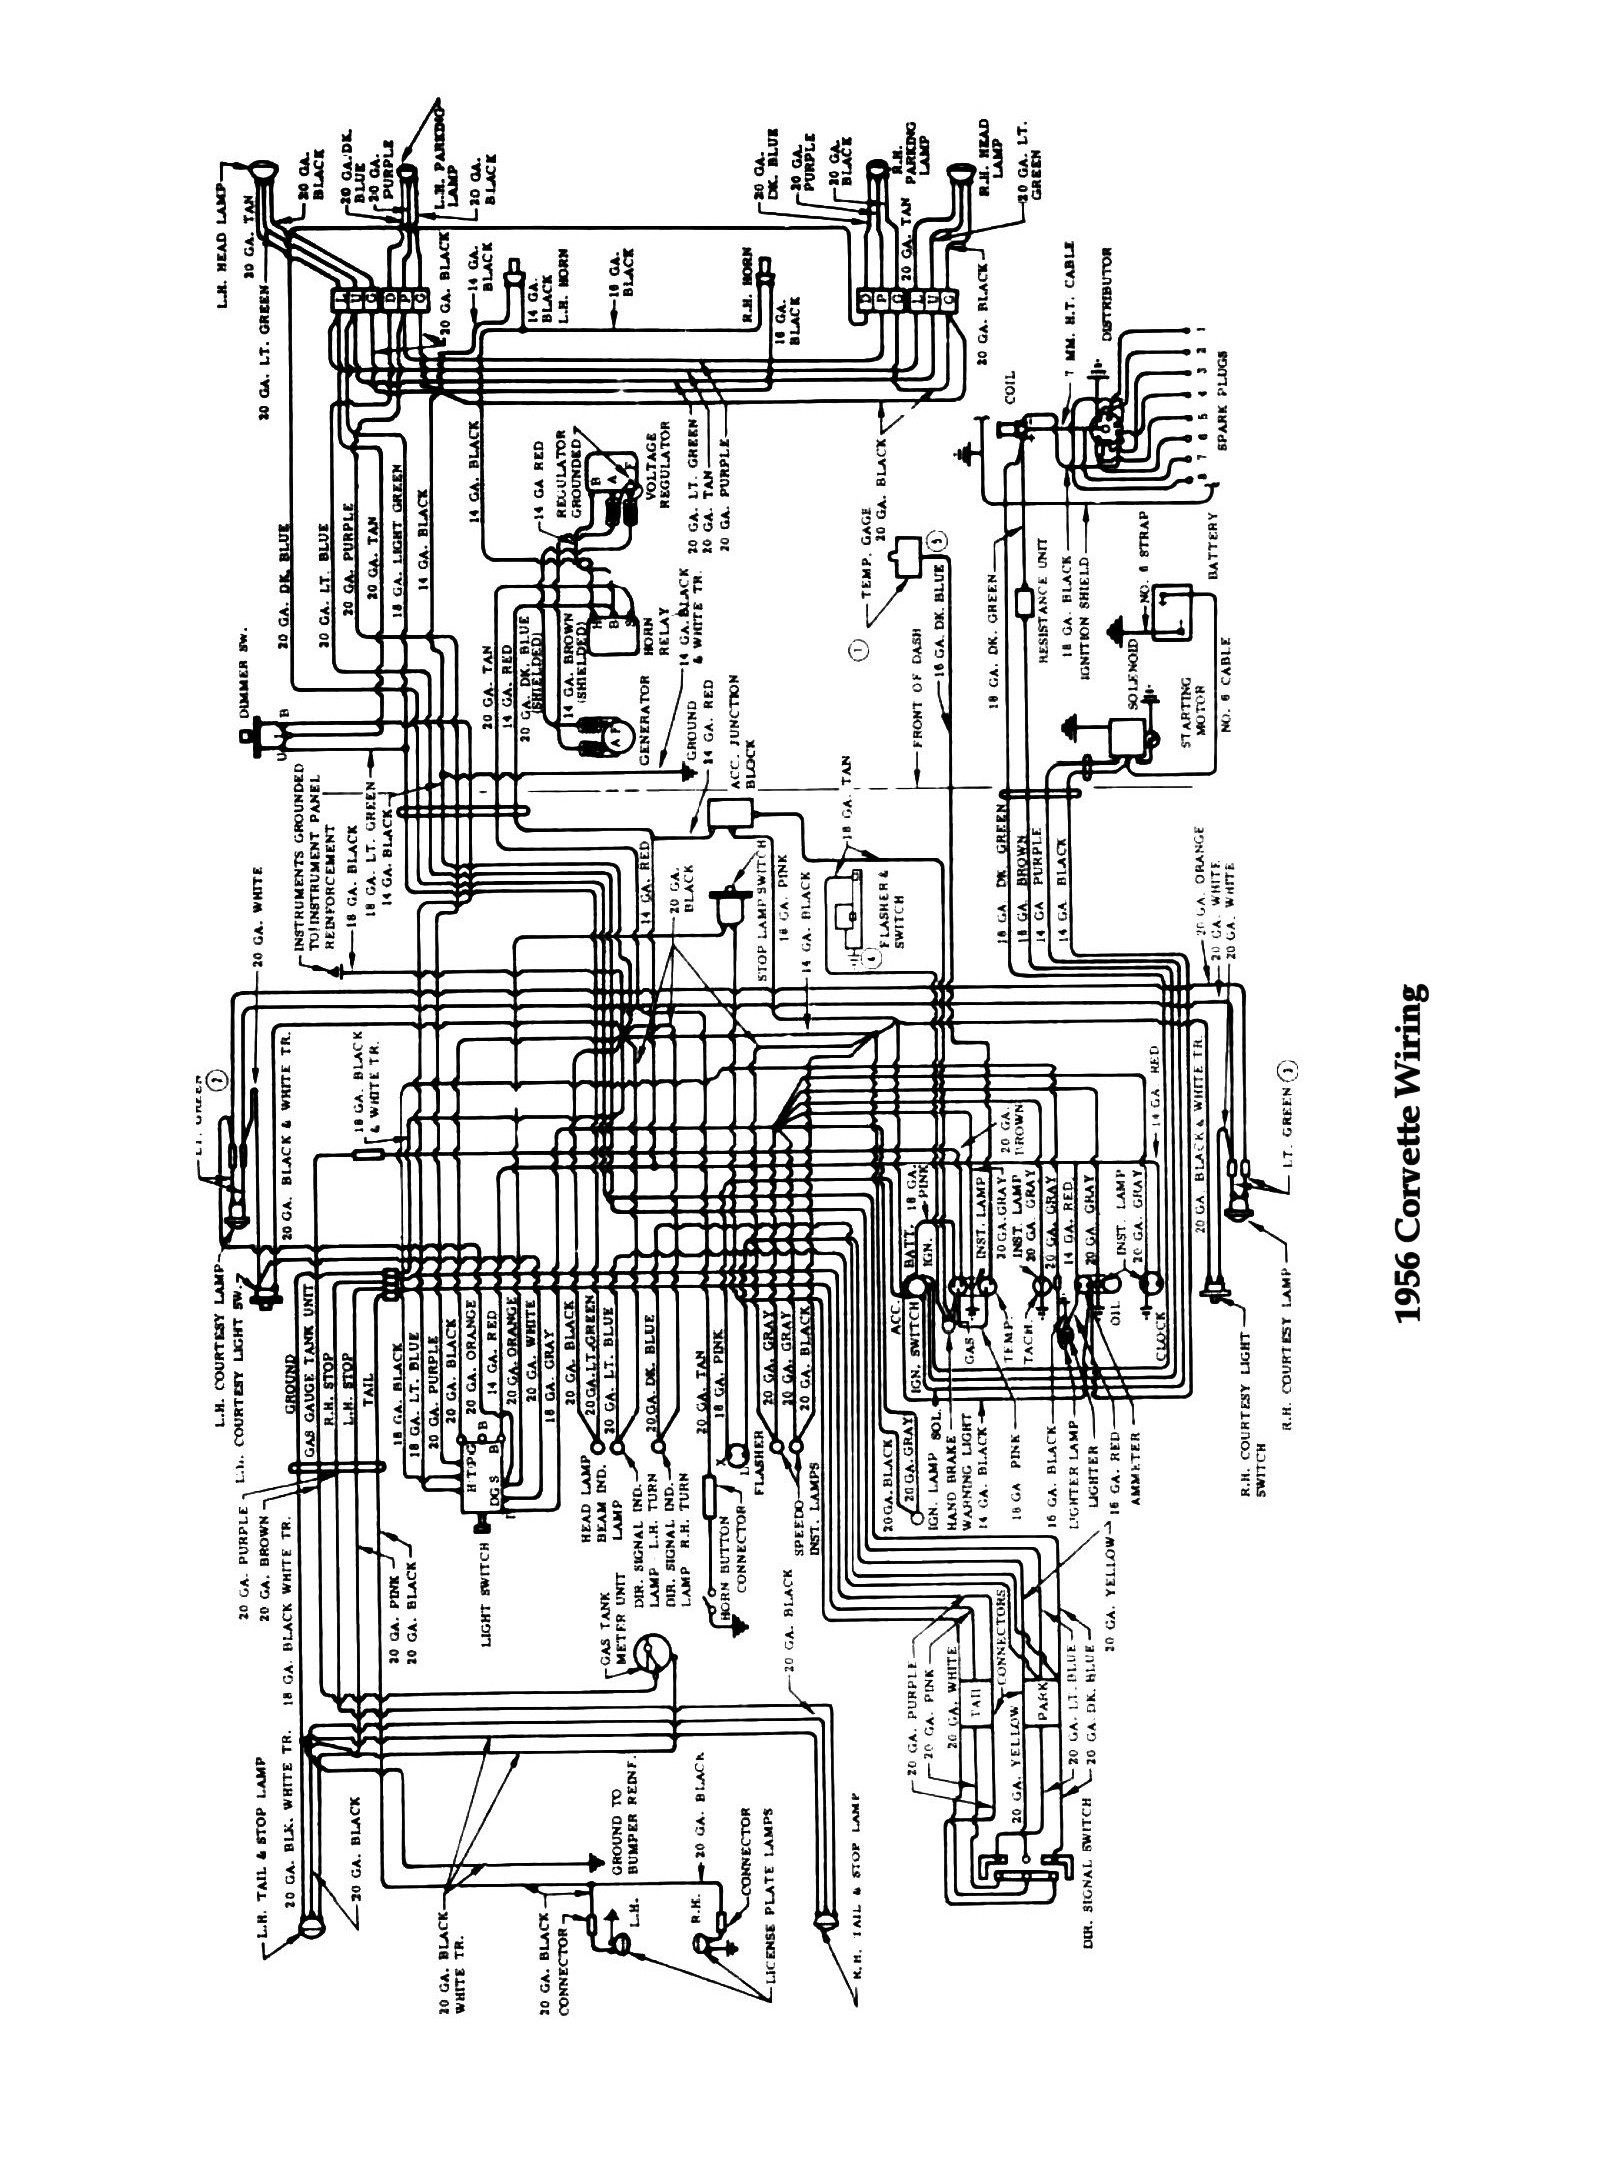 wiring diagrams rh chevy oldcarmanualproject com 1986 Corvette Wiring  Diagram 1962 Corvette Wiring Diagram